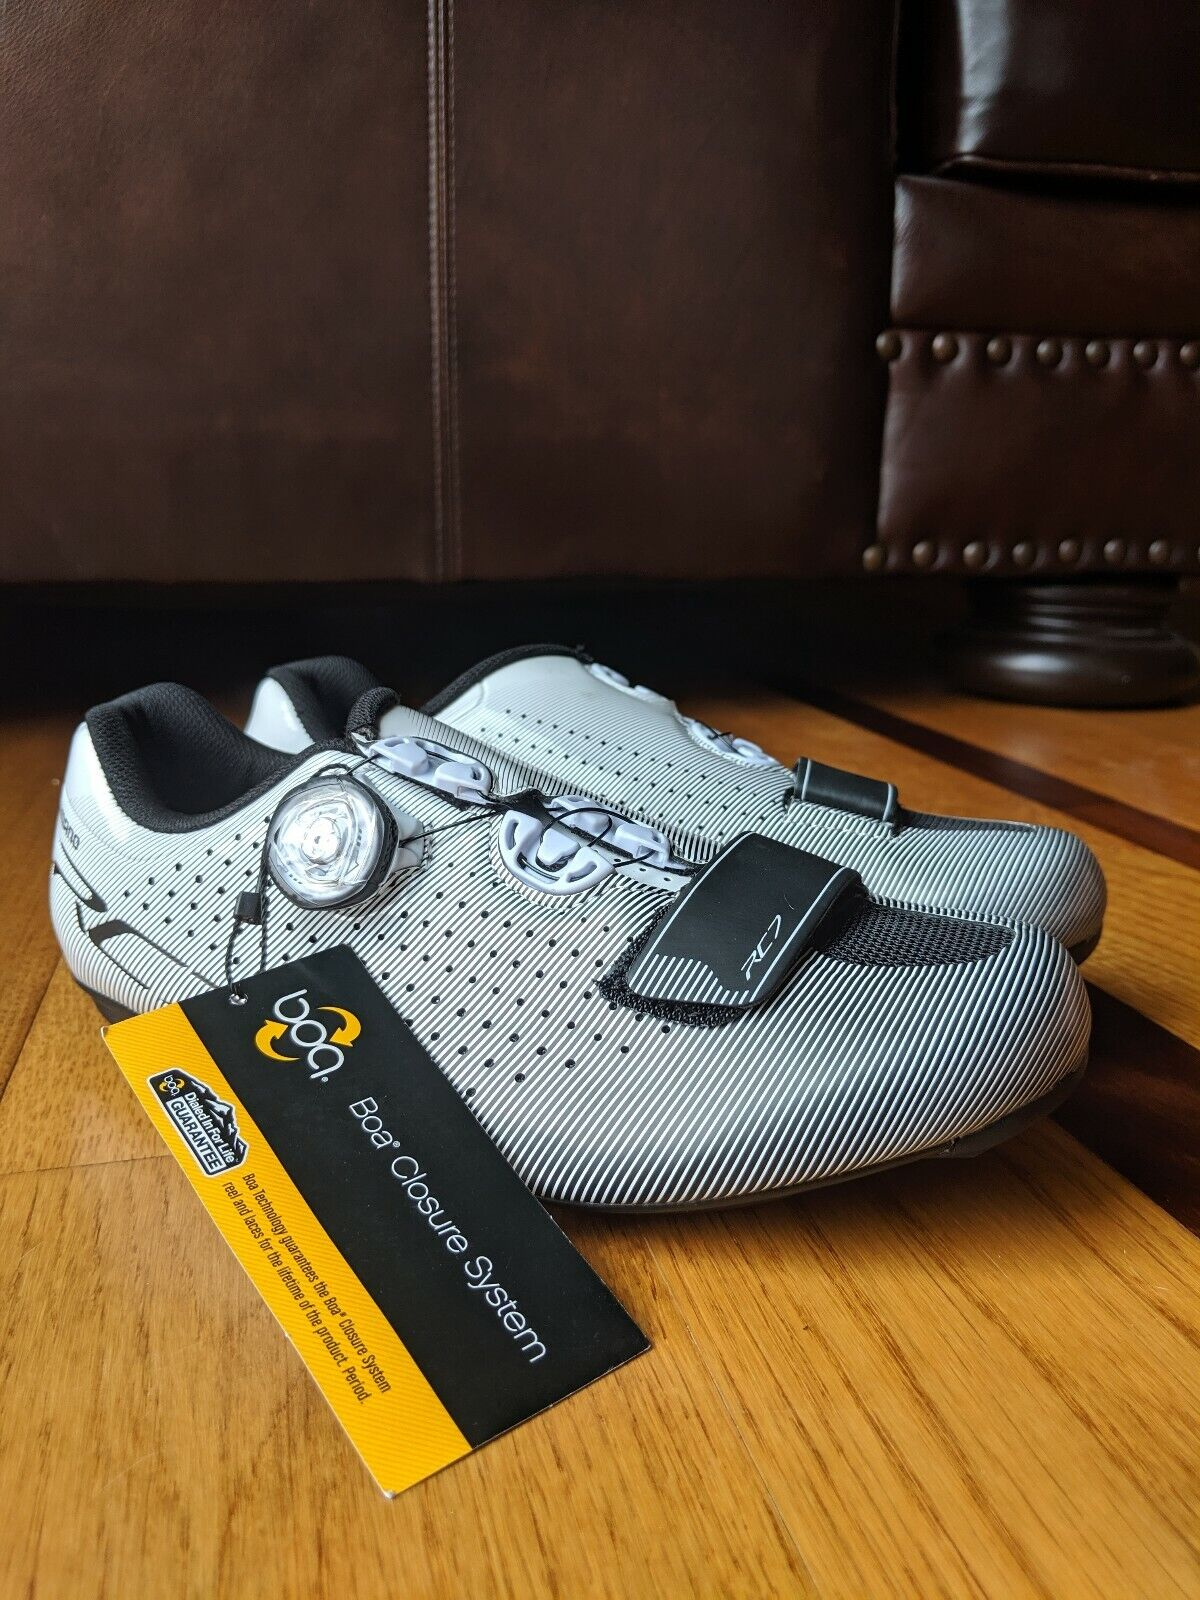 Shimano RC7 Carbon Road Bicycle Cycling Bike  shoes SH-RC700 White - SIZE 38  best prices and freshest styles